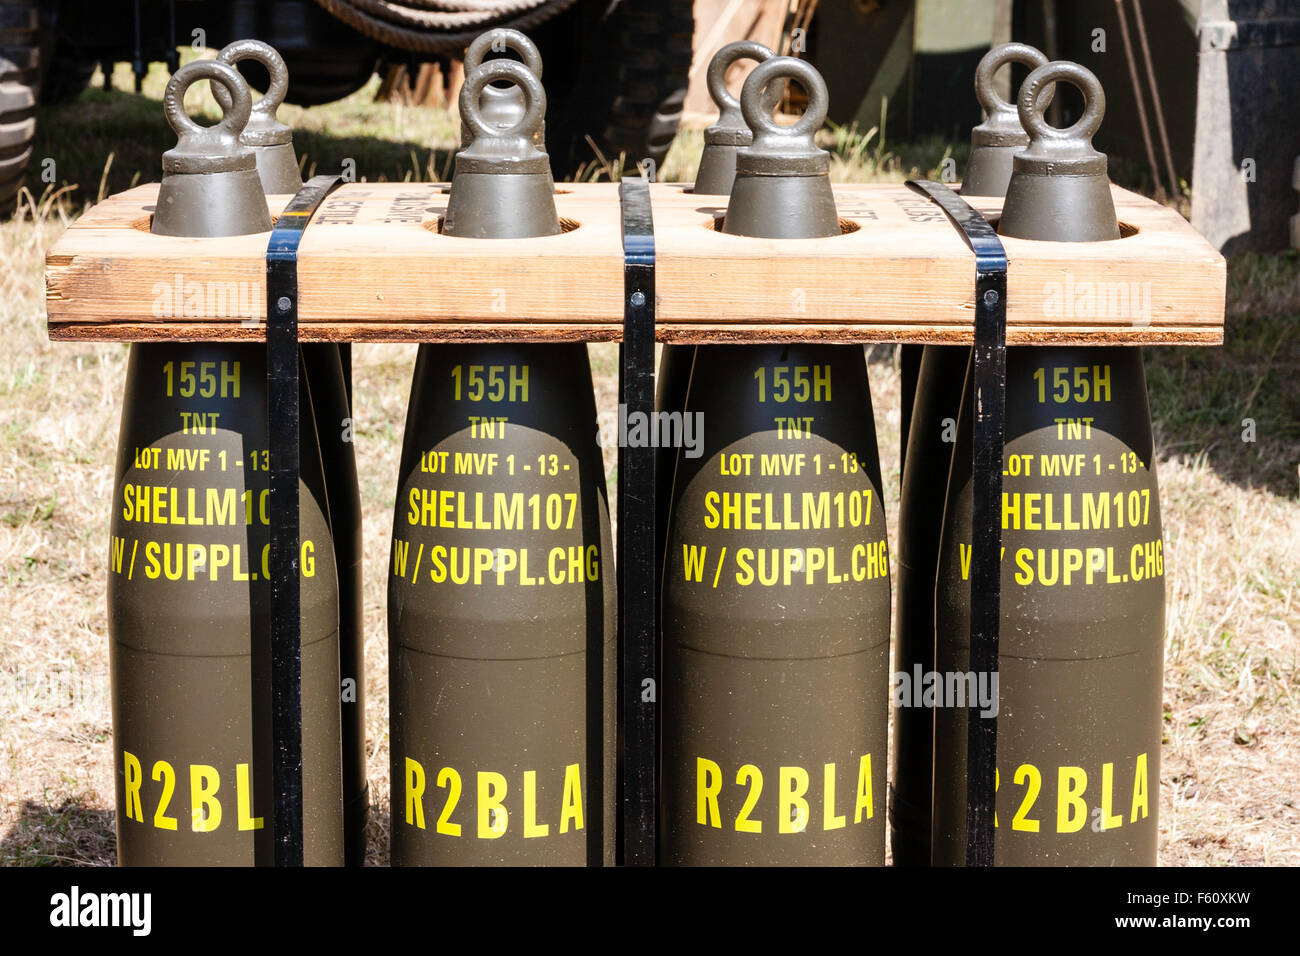 Rolling Thunder Vietnam war re-enactment society. Stack of eight artillery Shells, M155 calibre. Side-view. R2BLA - Stock Image